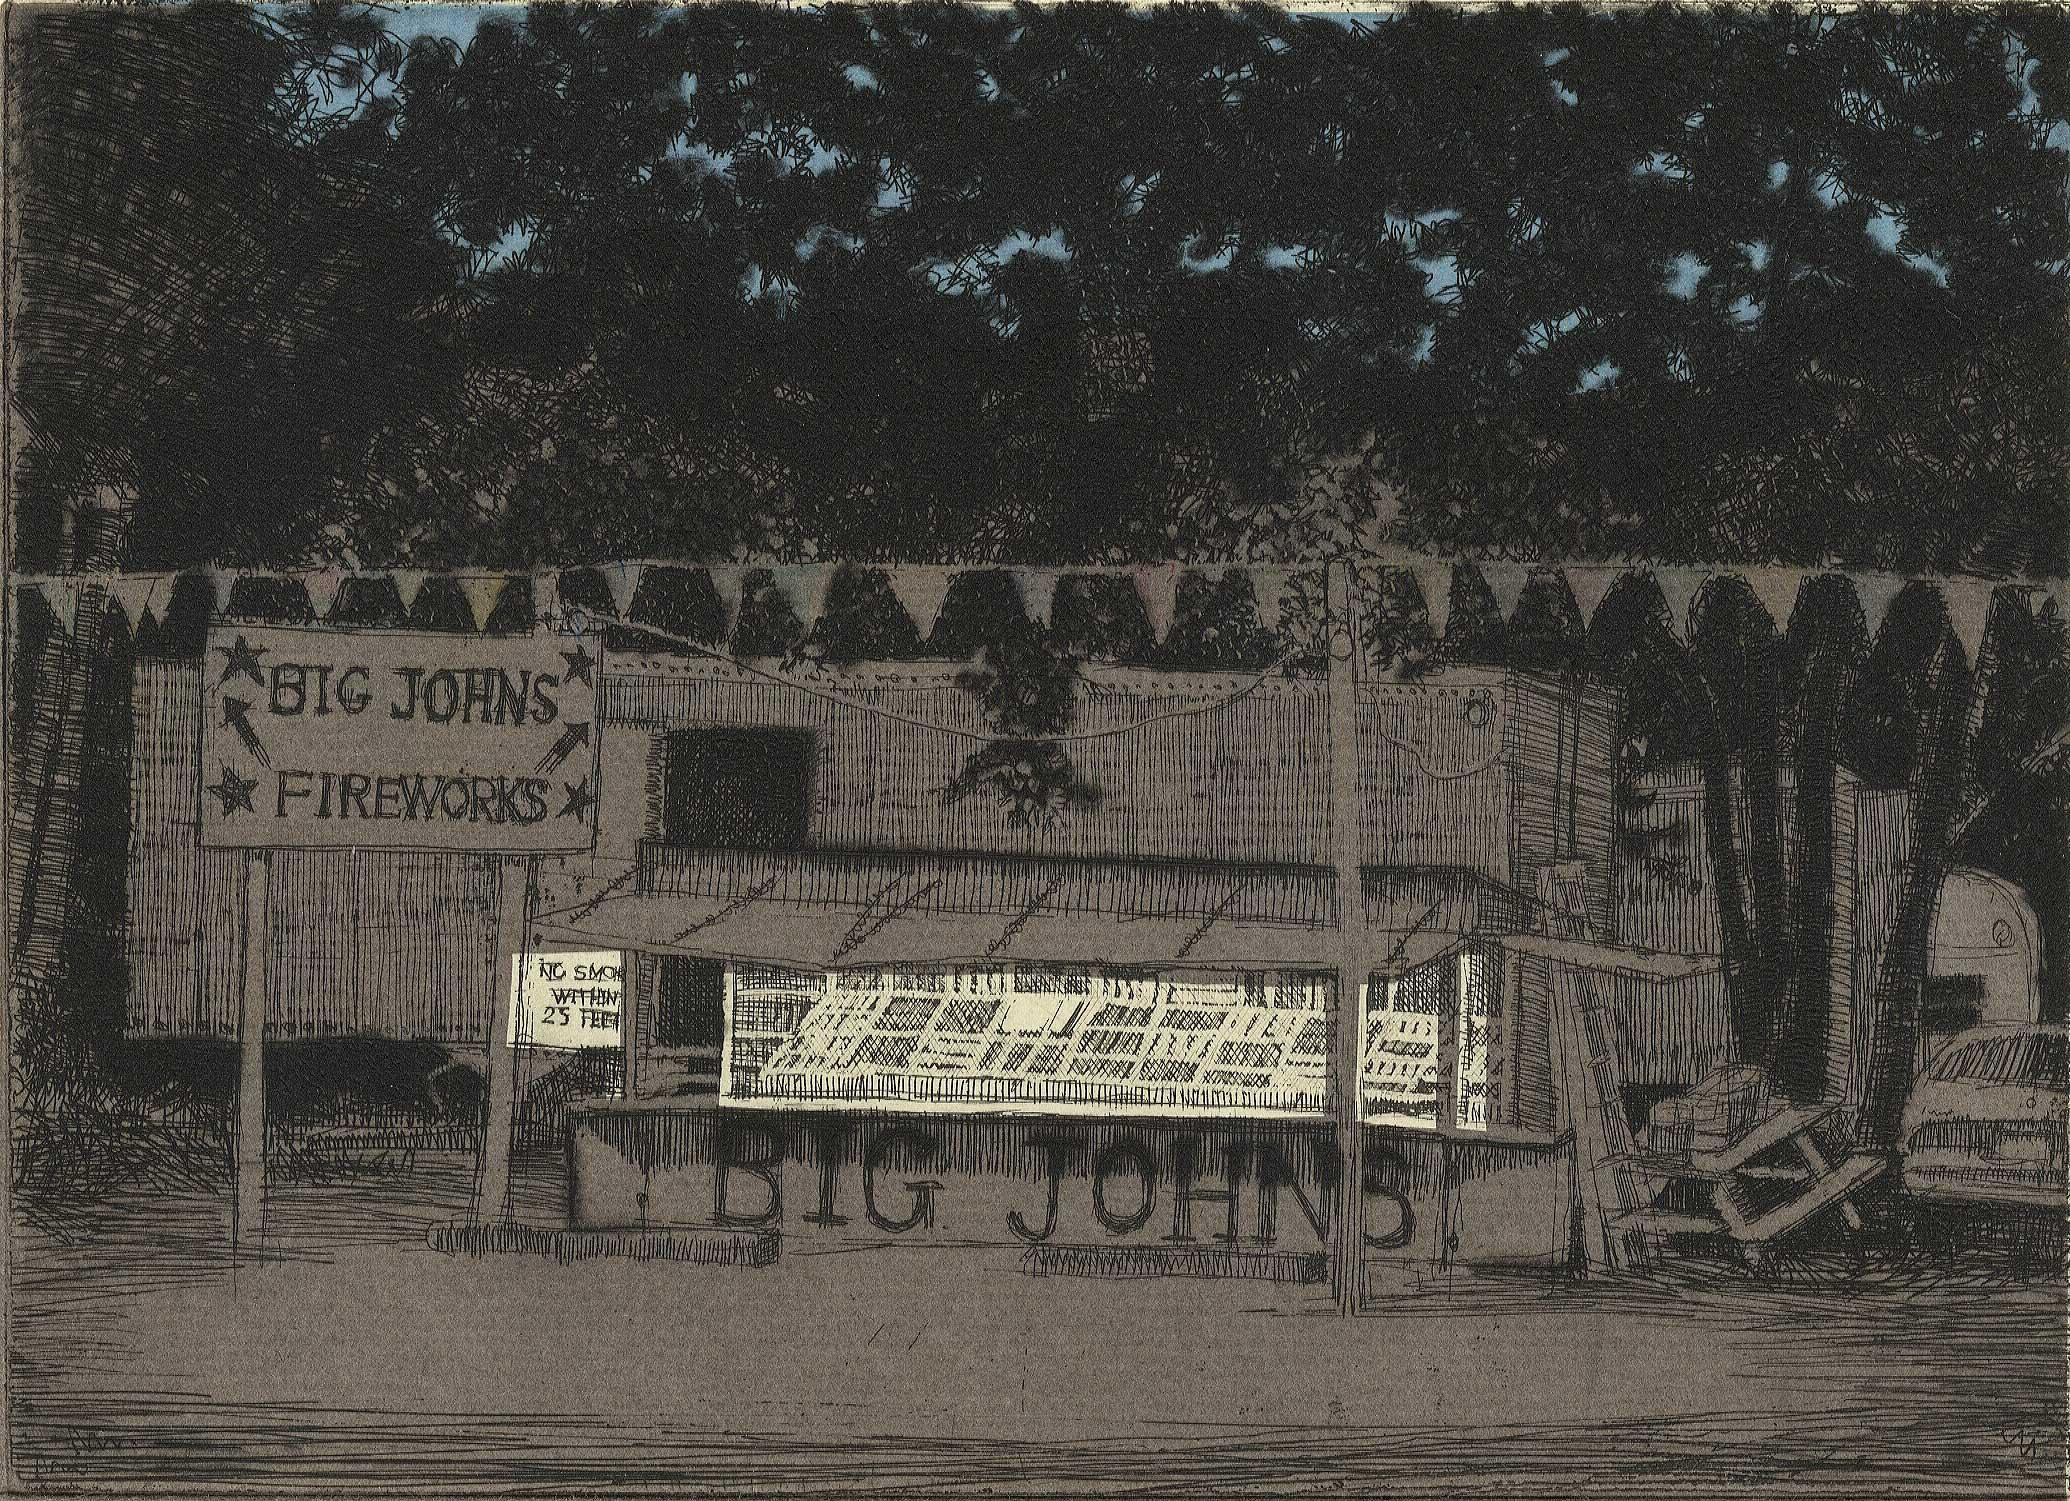 Big John's Fireworks (Get your bang from this Midwestern pop-up roadside stand)